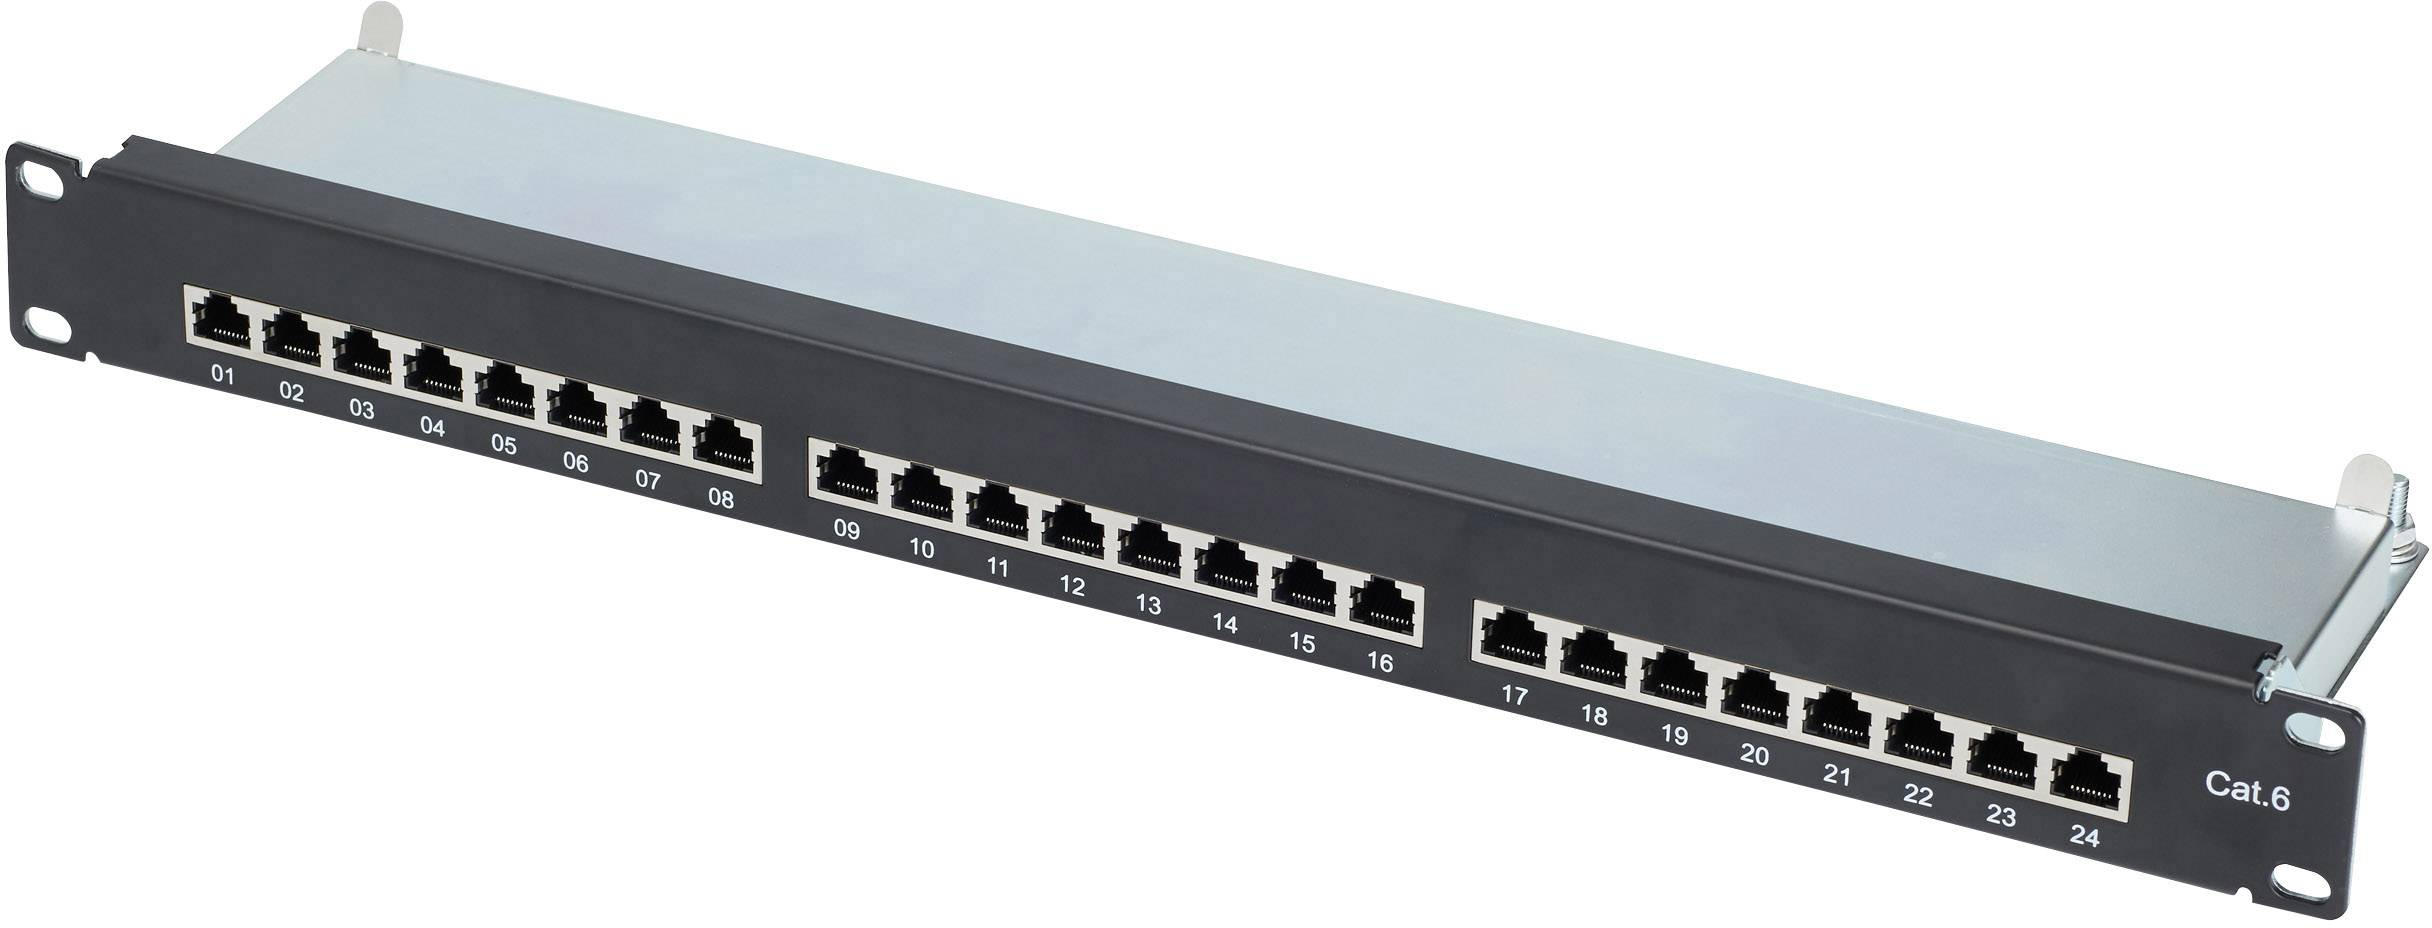 Sieťový Patchpanel Renkforce RF-4277937 CAT 6 24 portov 1 U